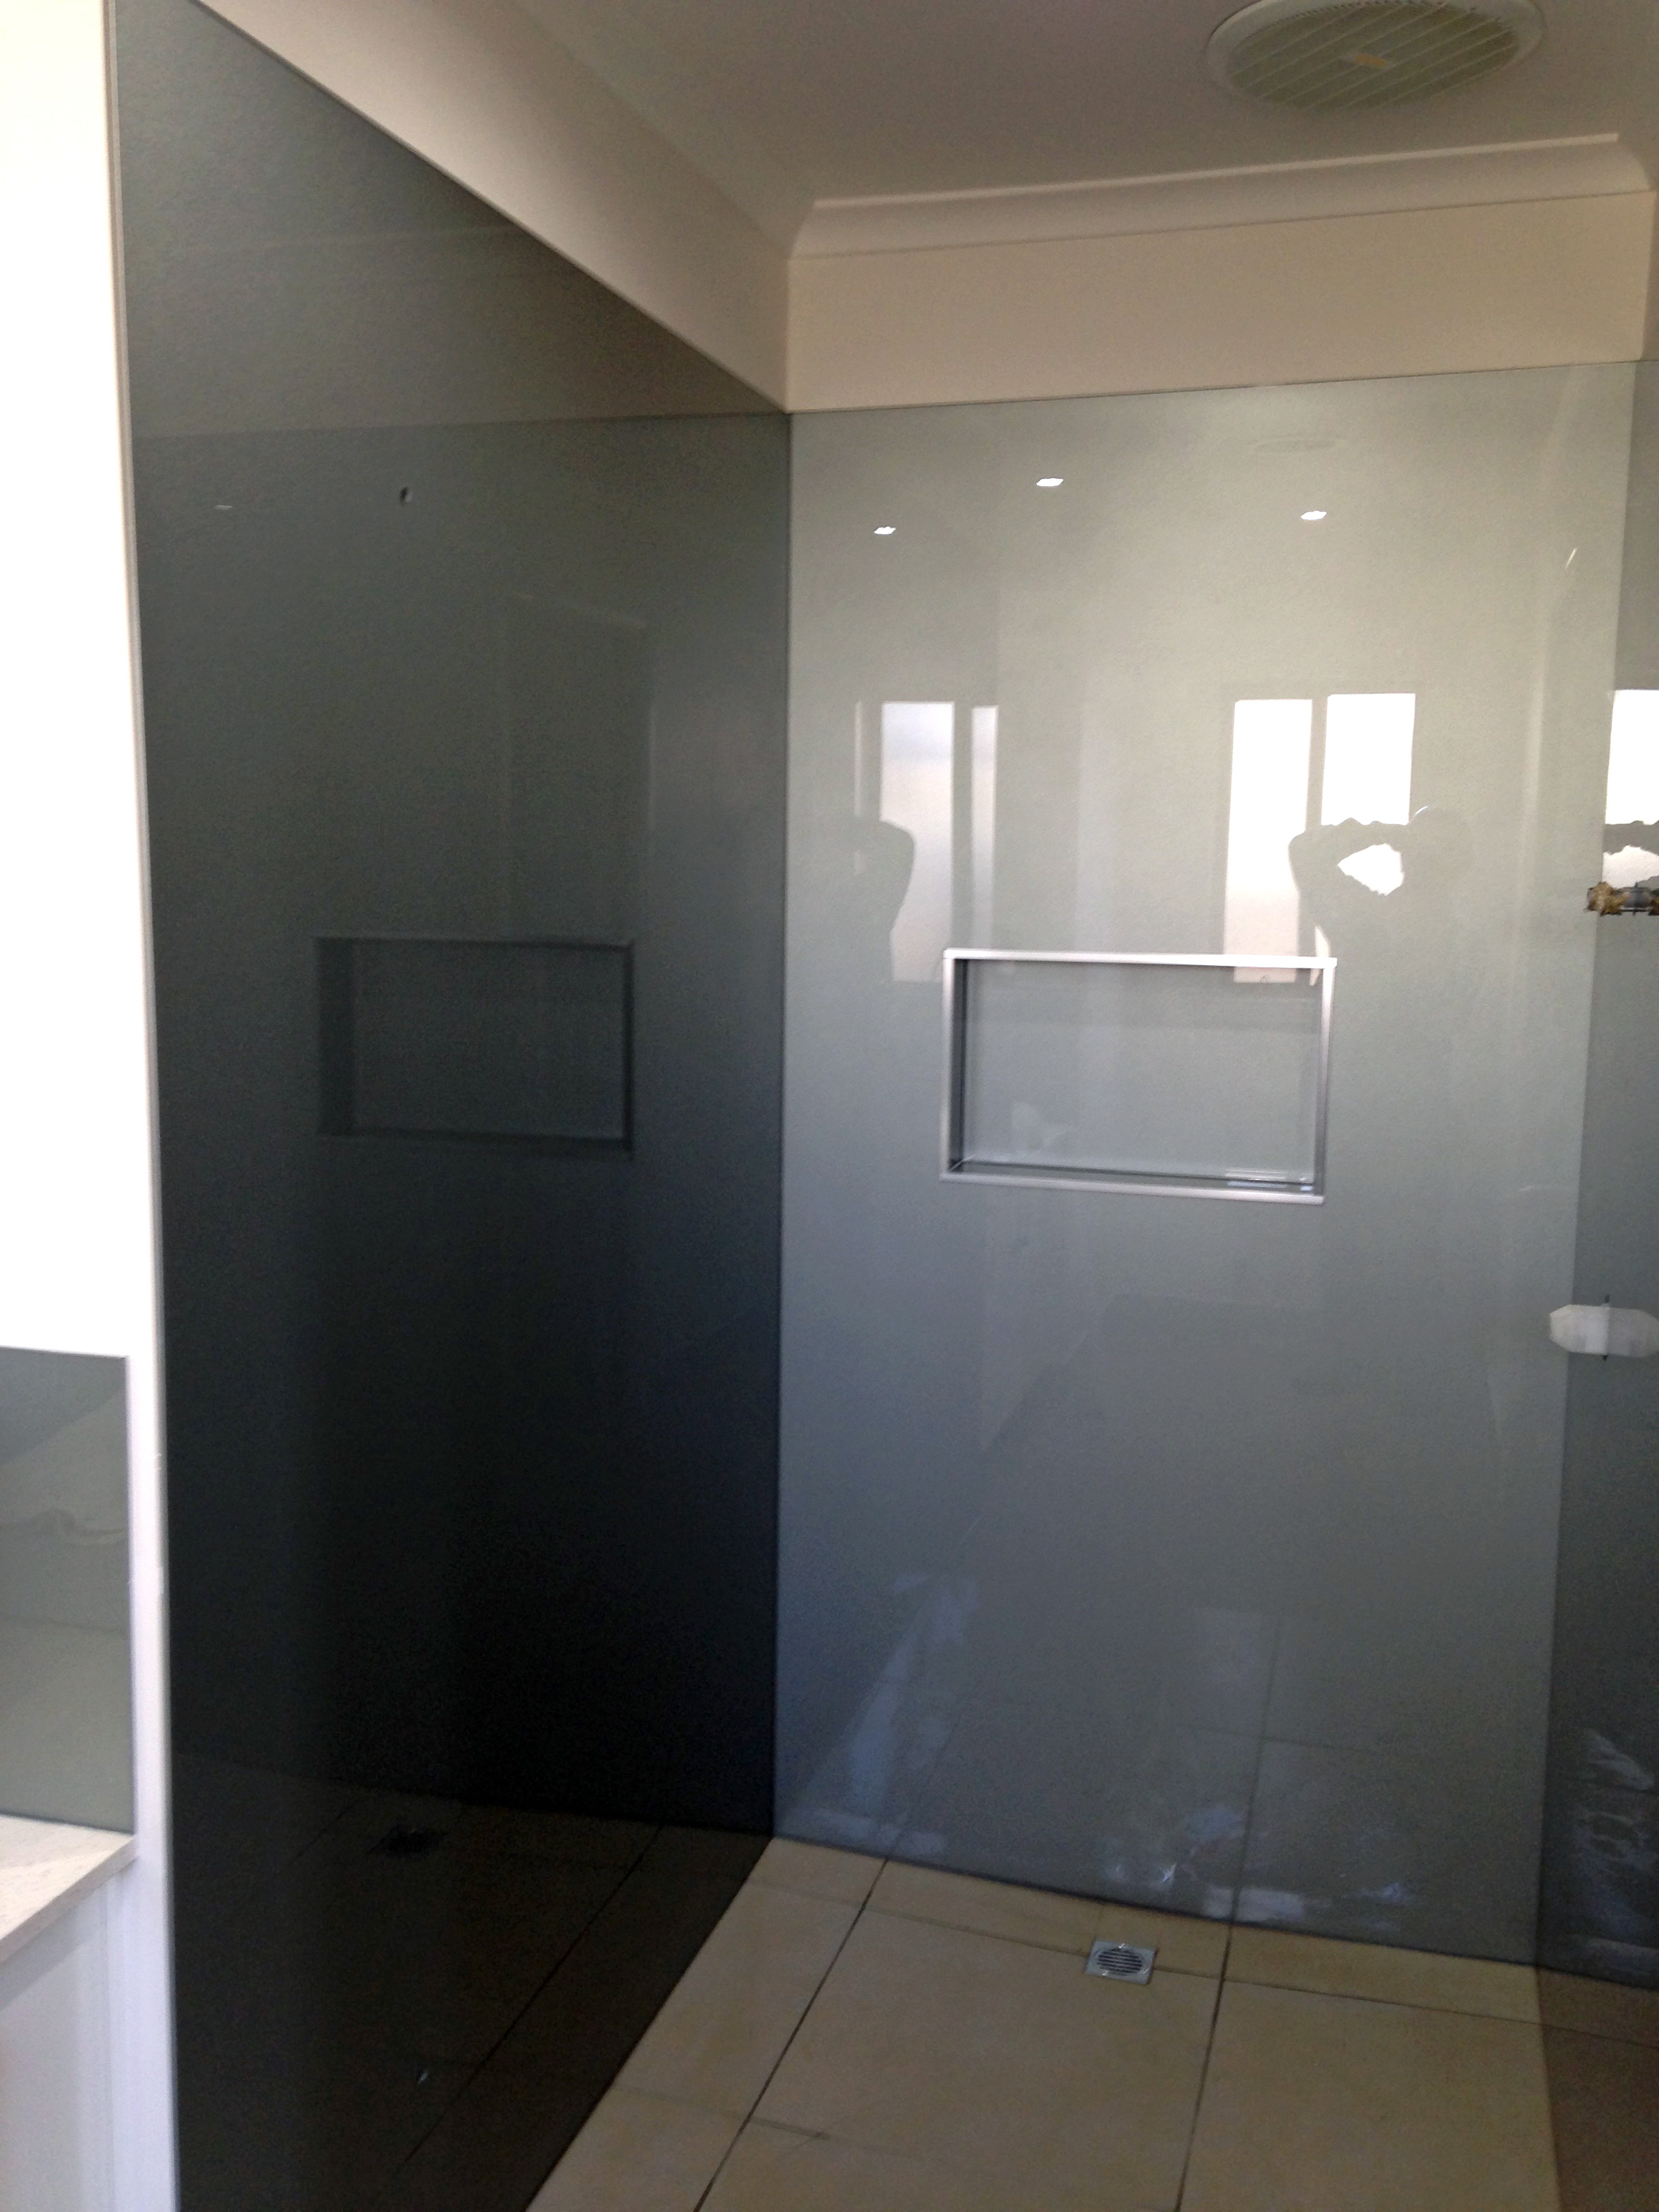 Bathroom Splashback